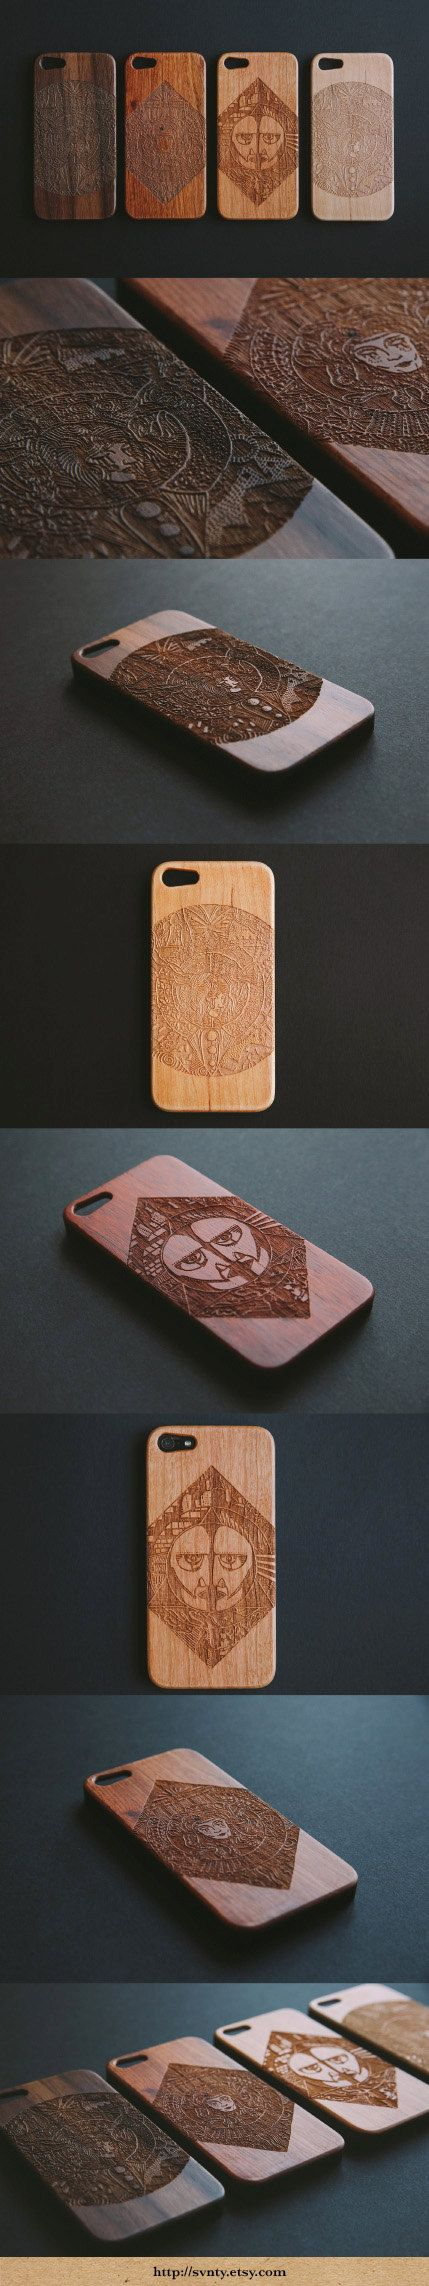 25 DIY Ways To Dress Up Your iPhone Case-homesthetics (21)